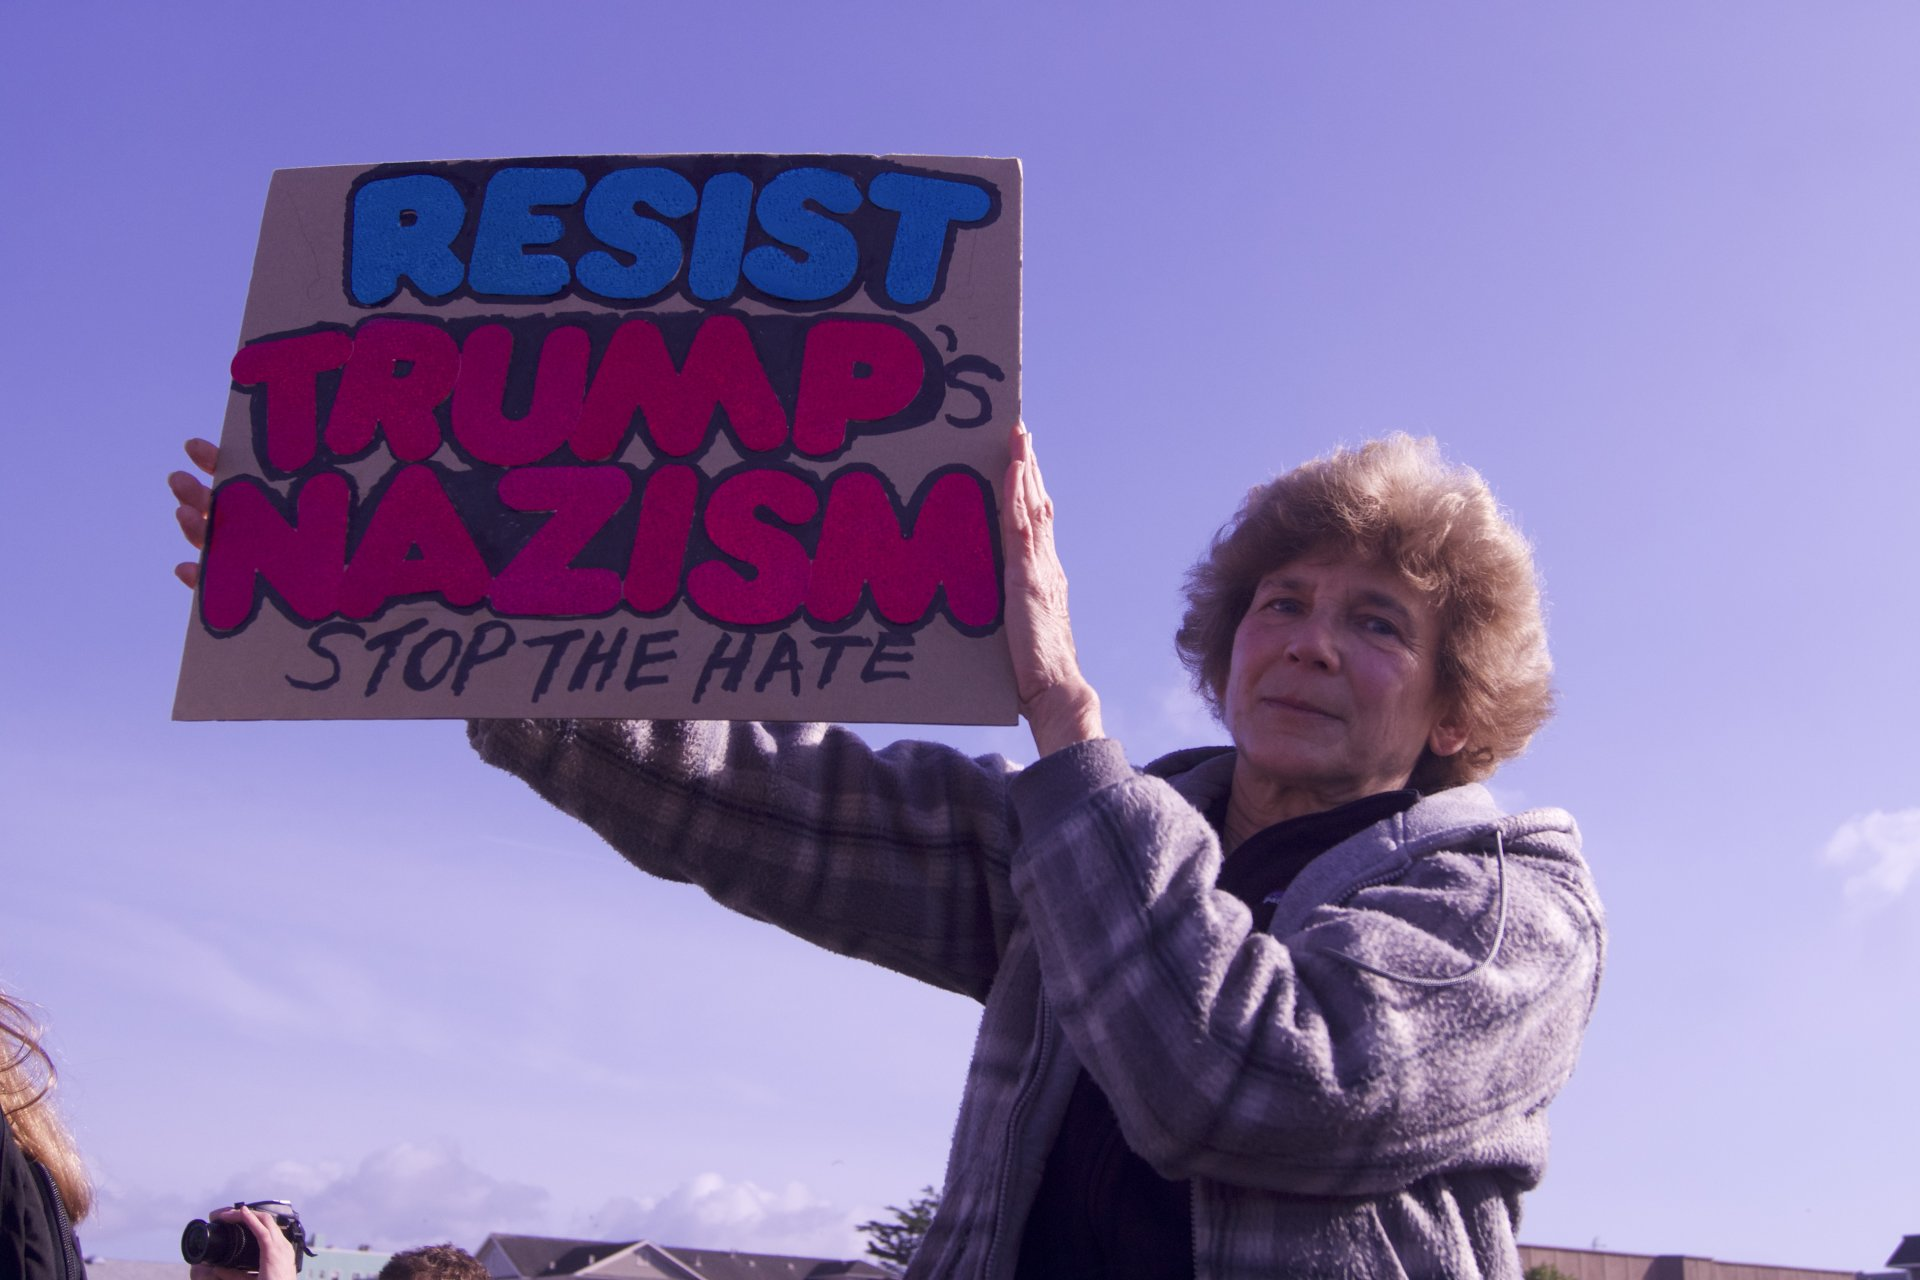 A protester holds a sign at the Women's March in Eureka on Jan. 21, 2018. Photo by Michelle Meyers.